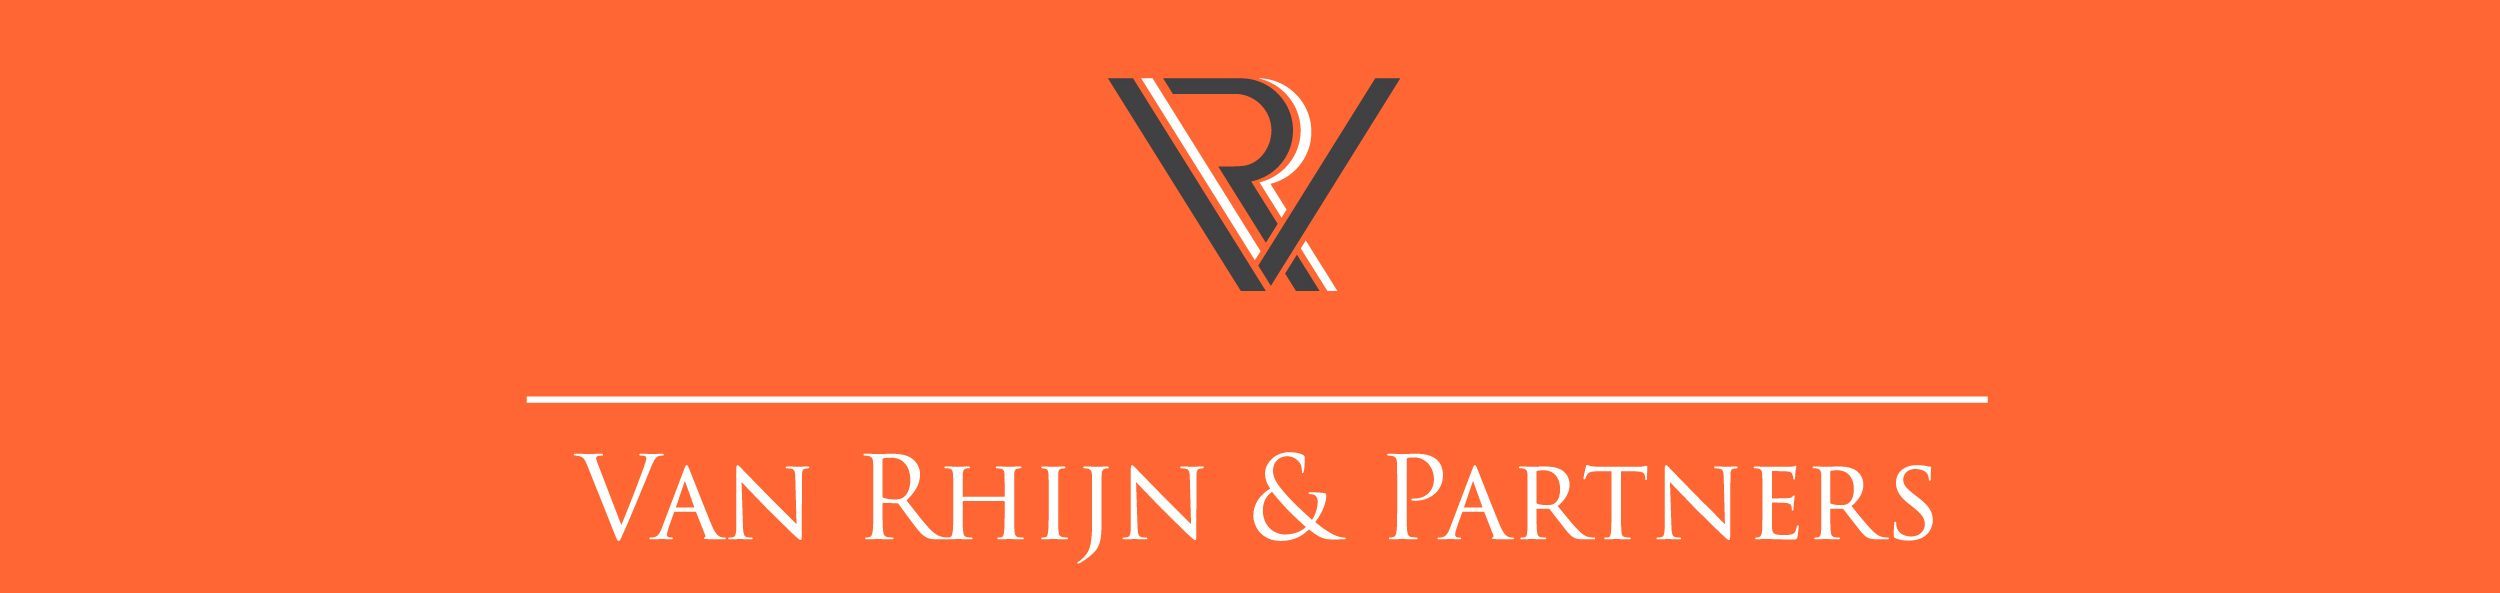 Van Rhijn & Partners, Legal Services in Russia